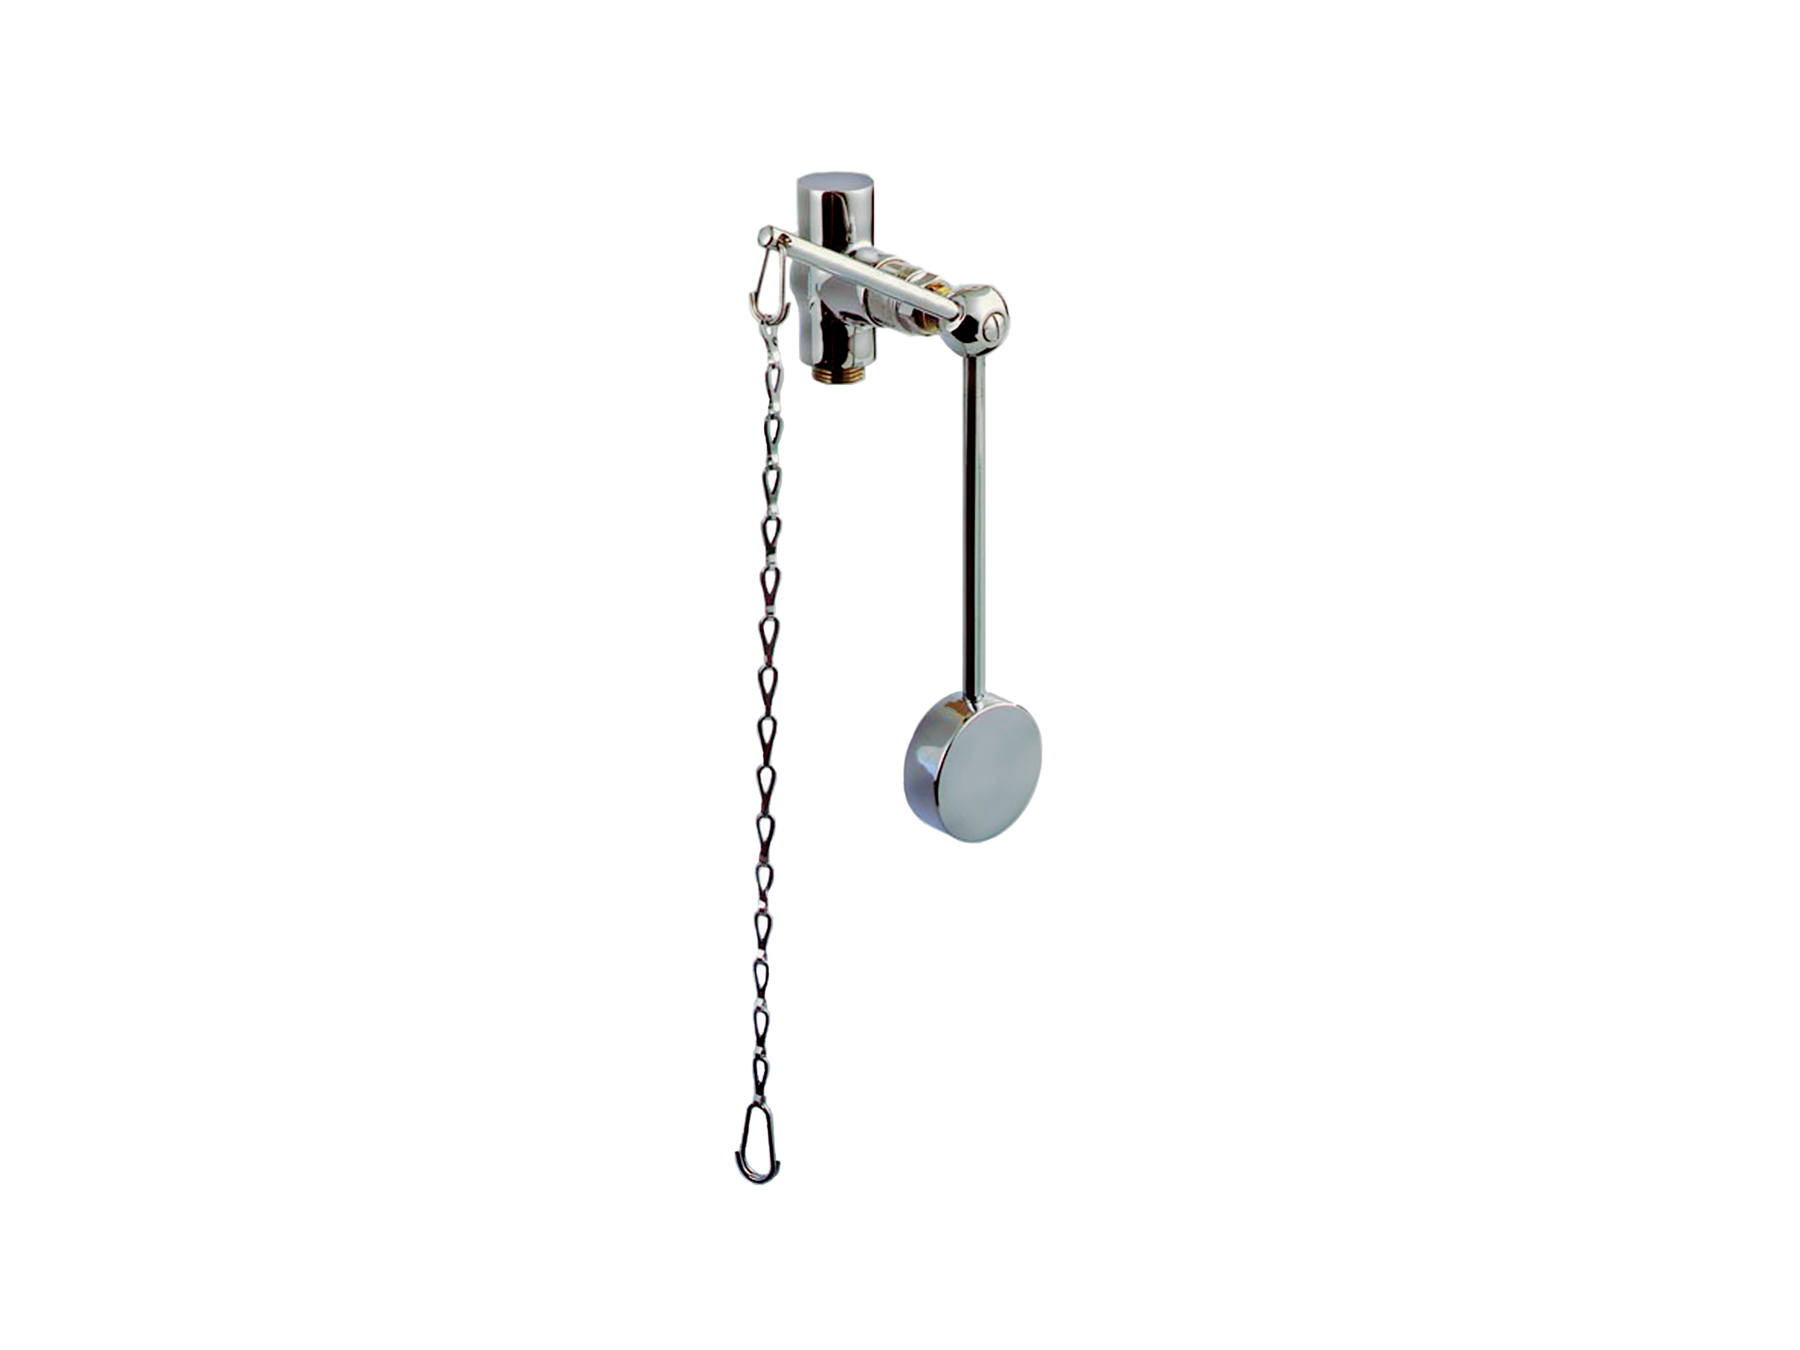 Showertap, 1 chains, without rose 1001.--.84